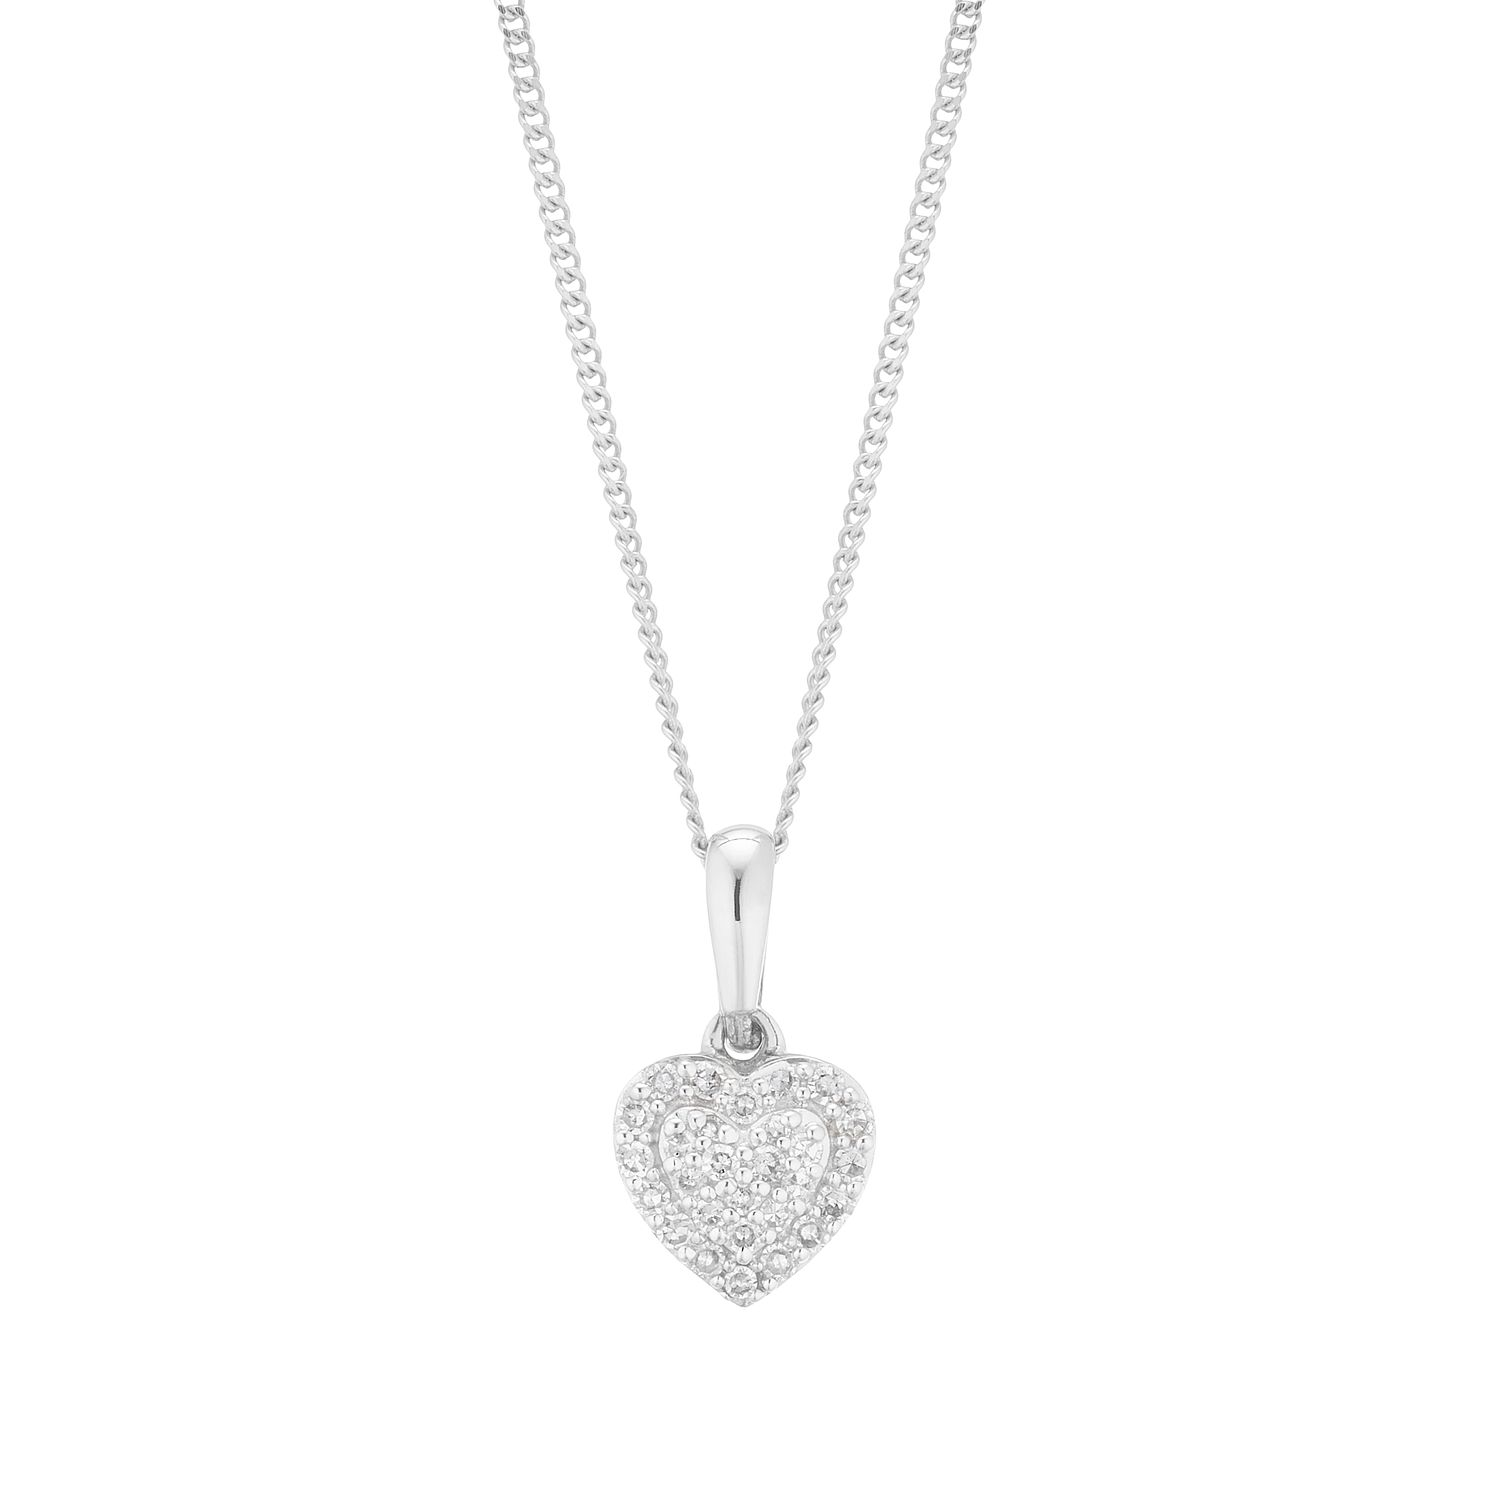 9ct White Gold 1/10ct Diamond Heart Pendant - Product number 5920787